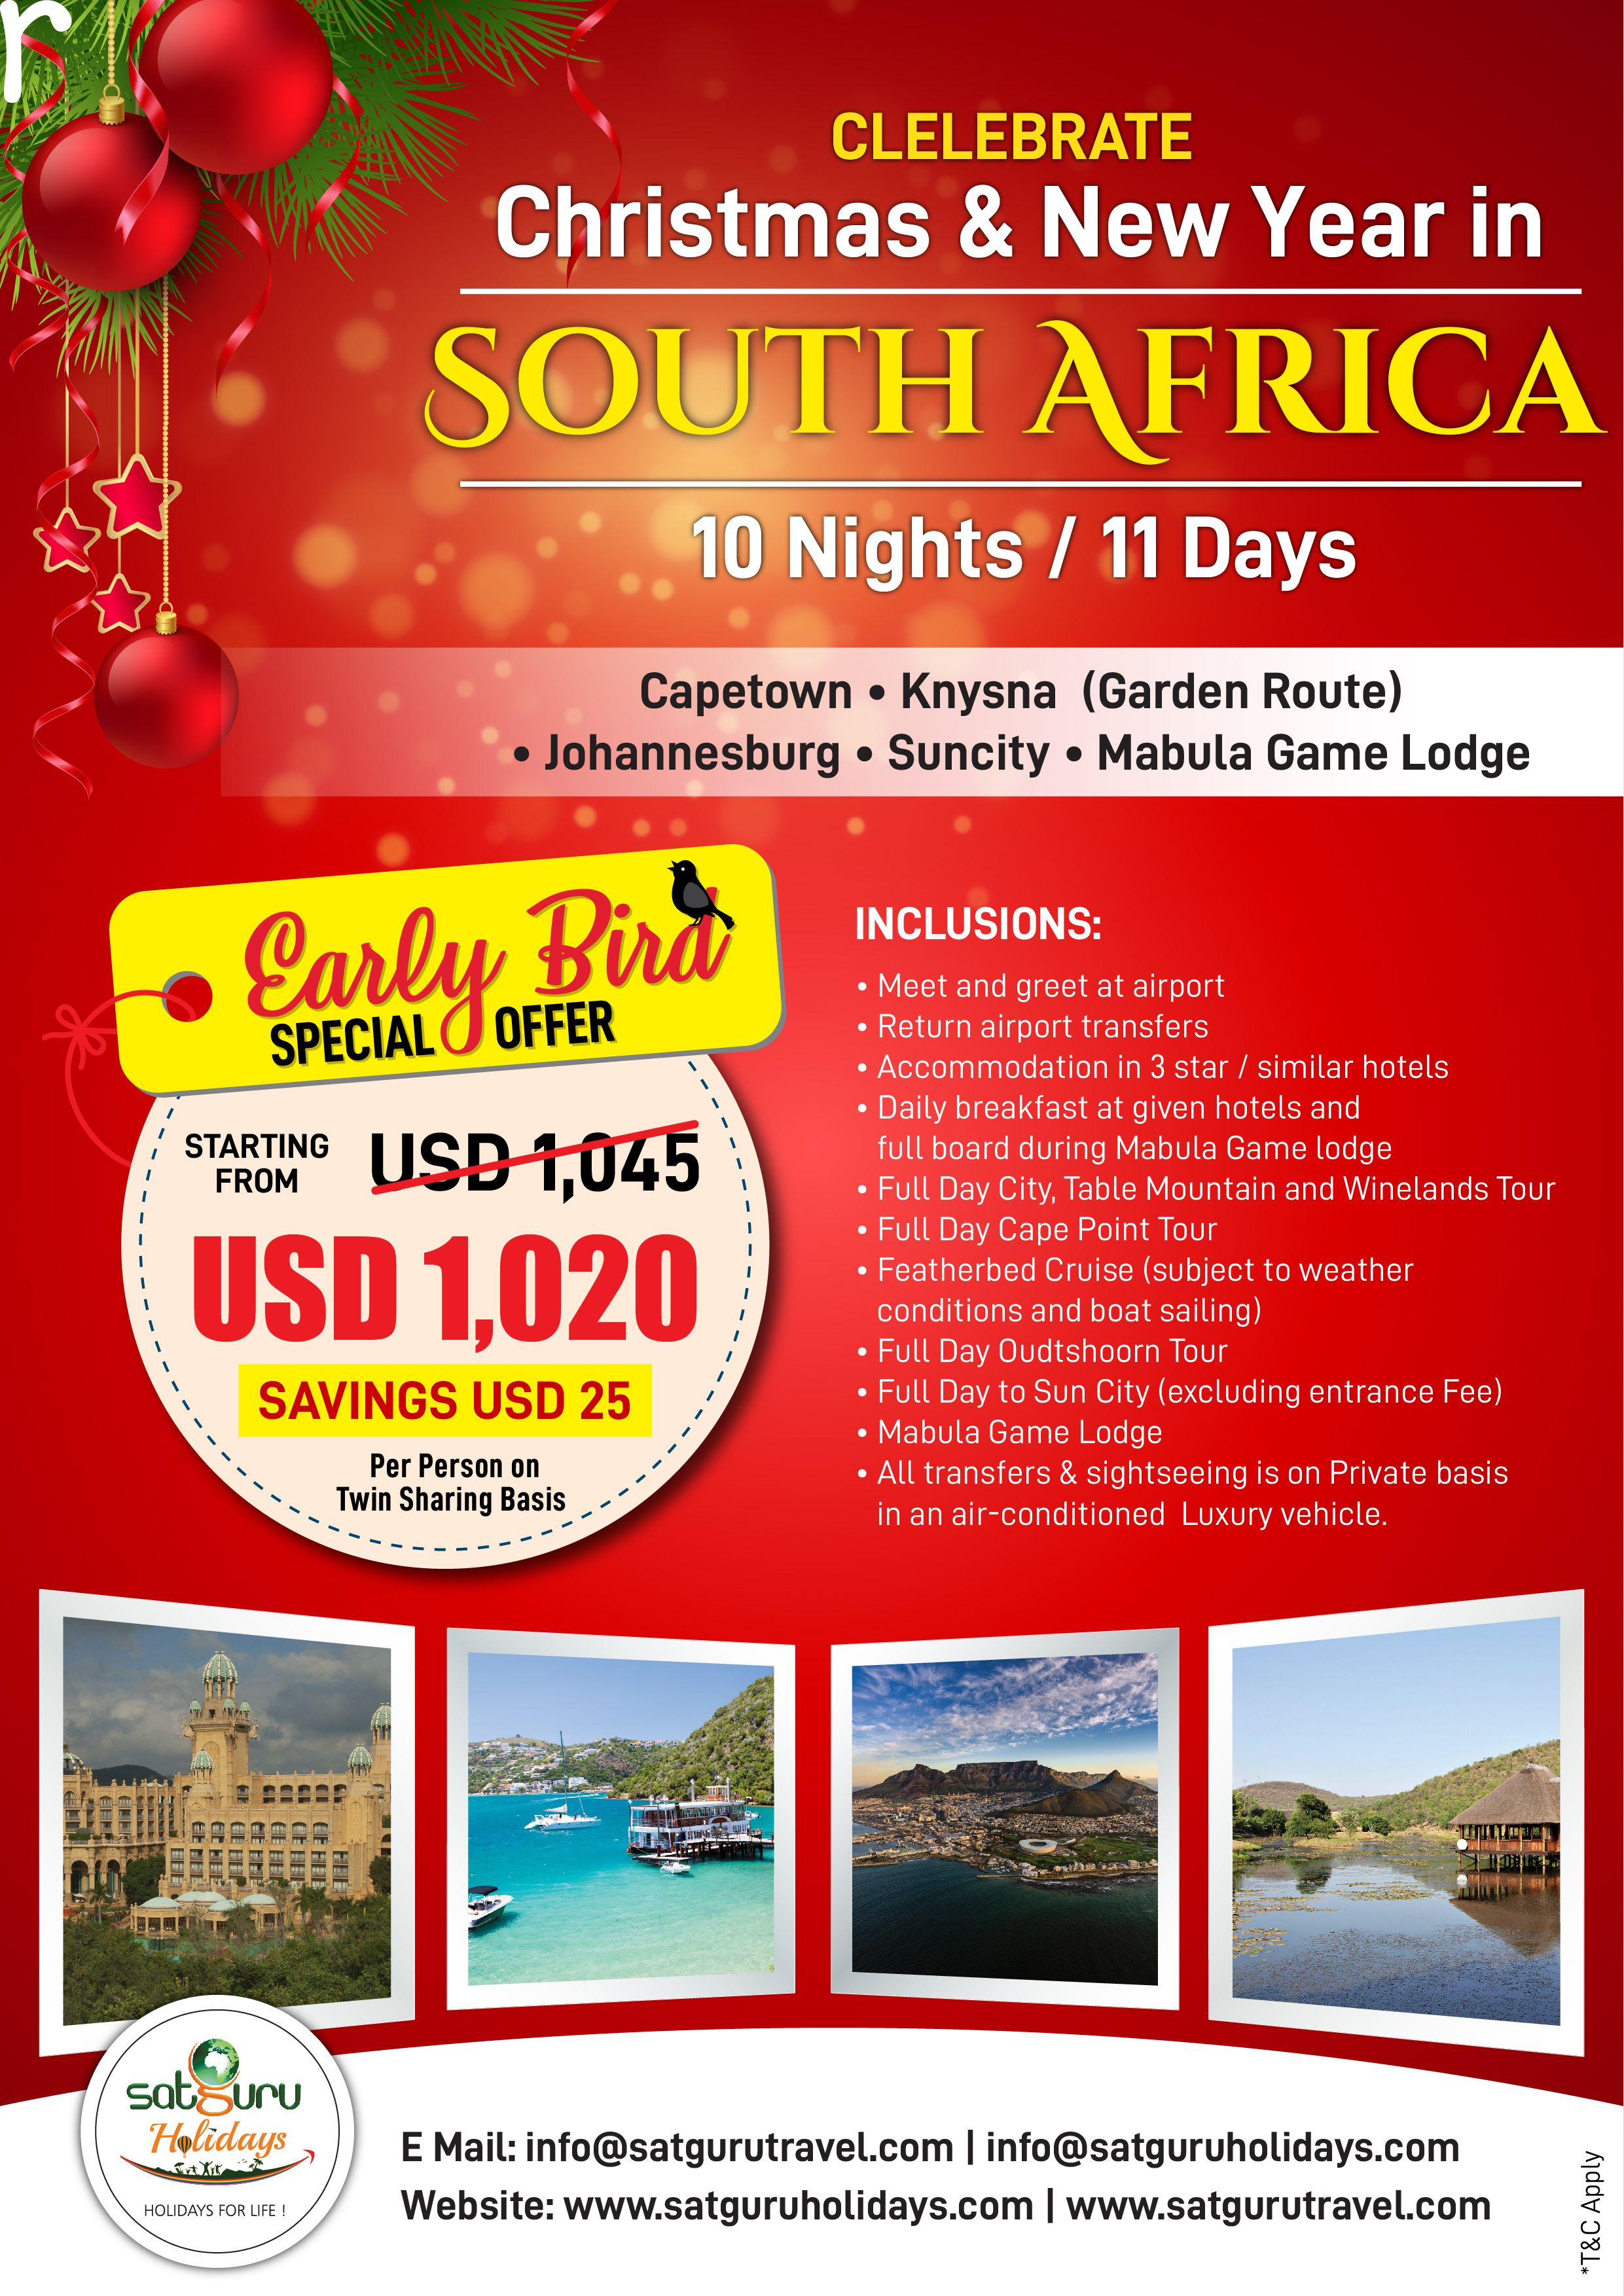 Christmas In The South 2019 Celebrate Christmas and New Year 2019 in South Africa! #Christmas